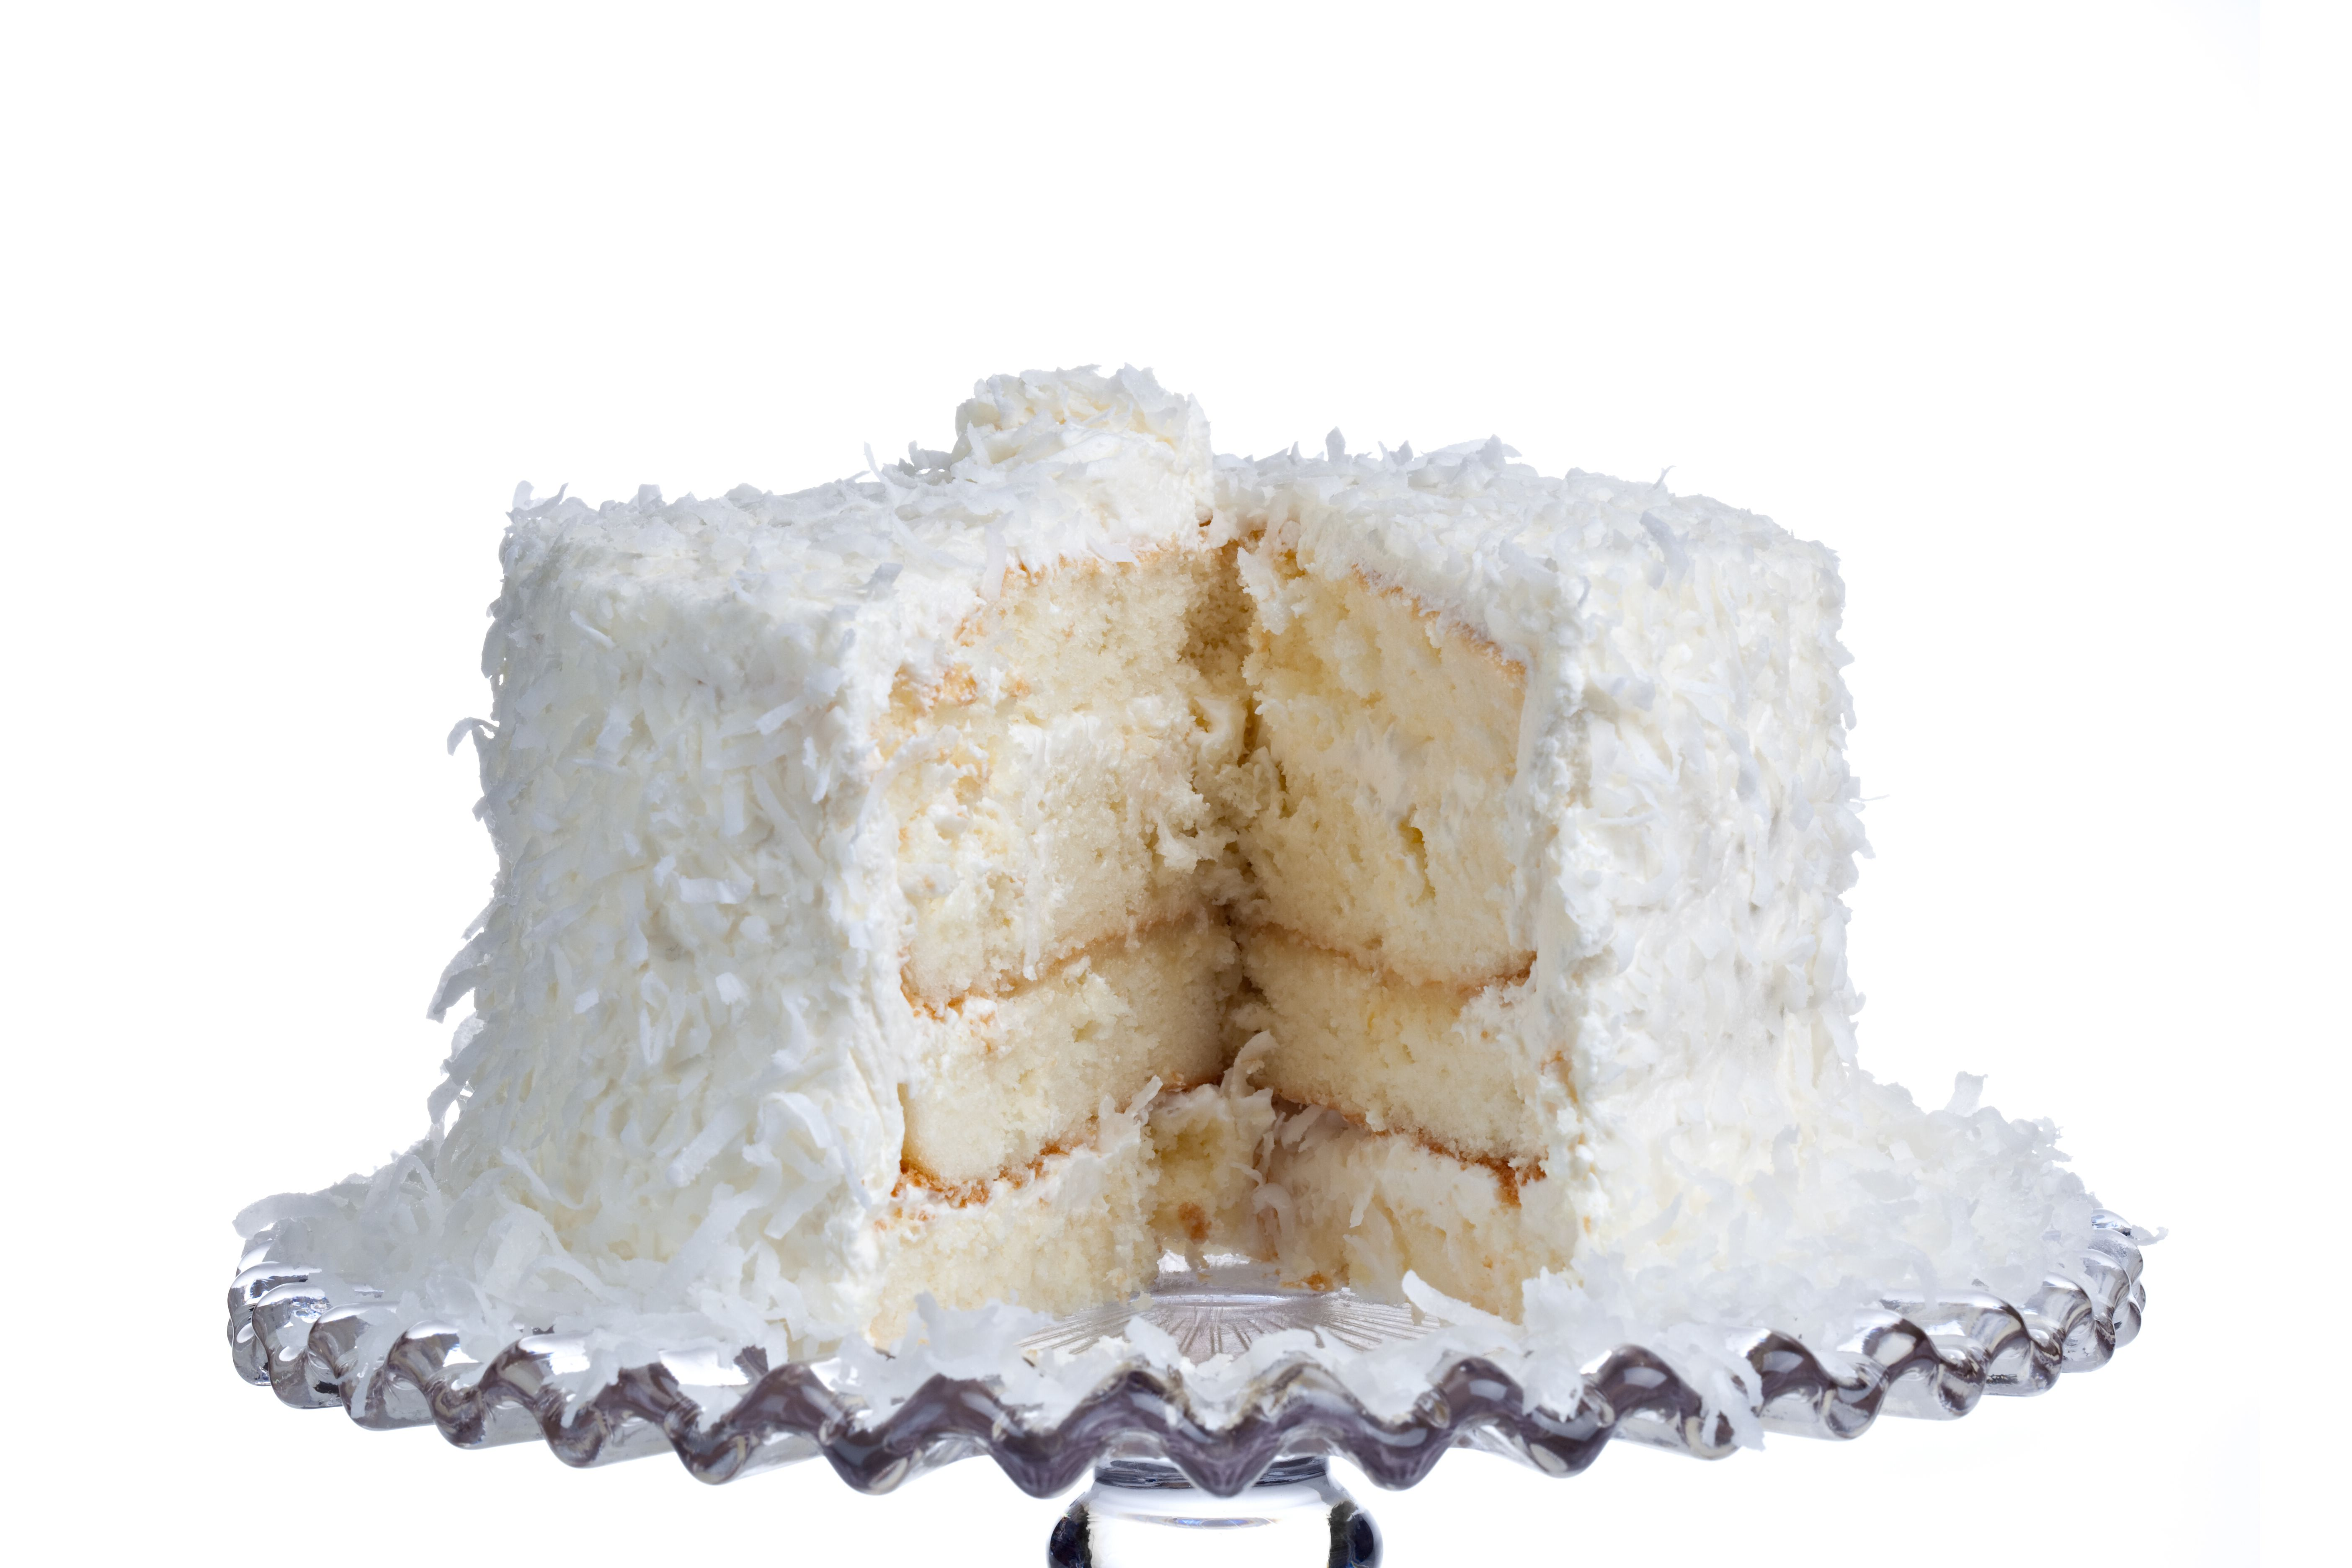 Layered coconut cake on a glass cake stand